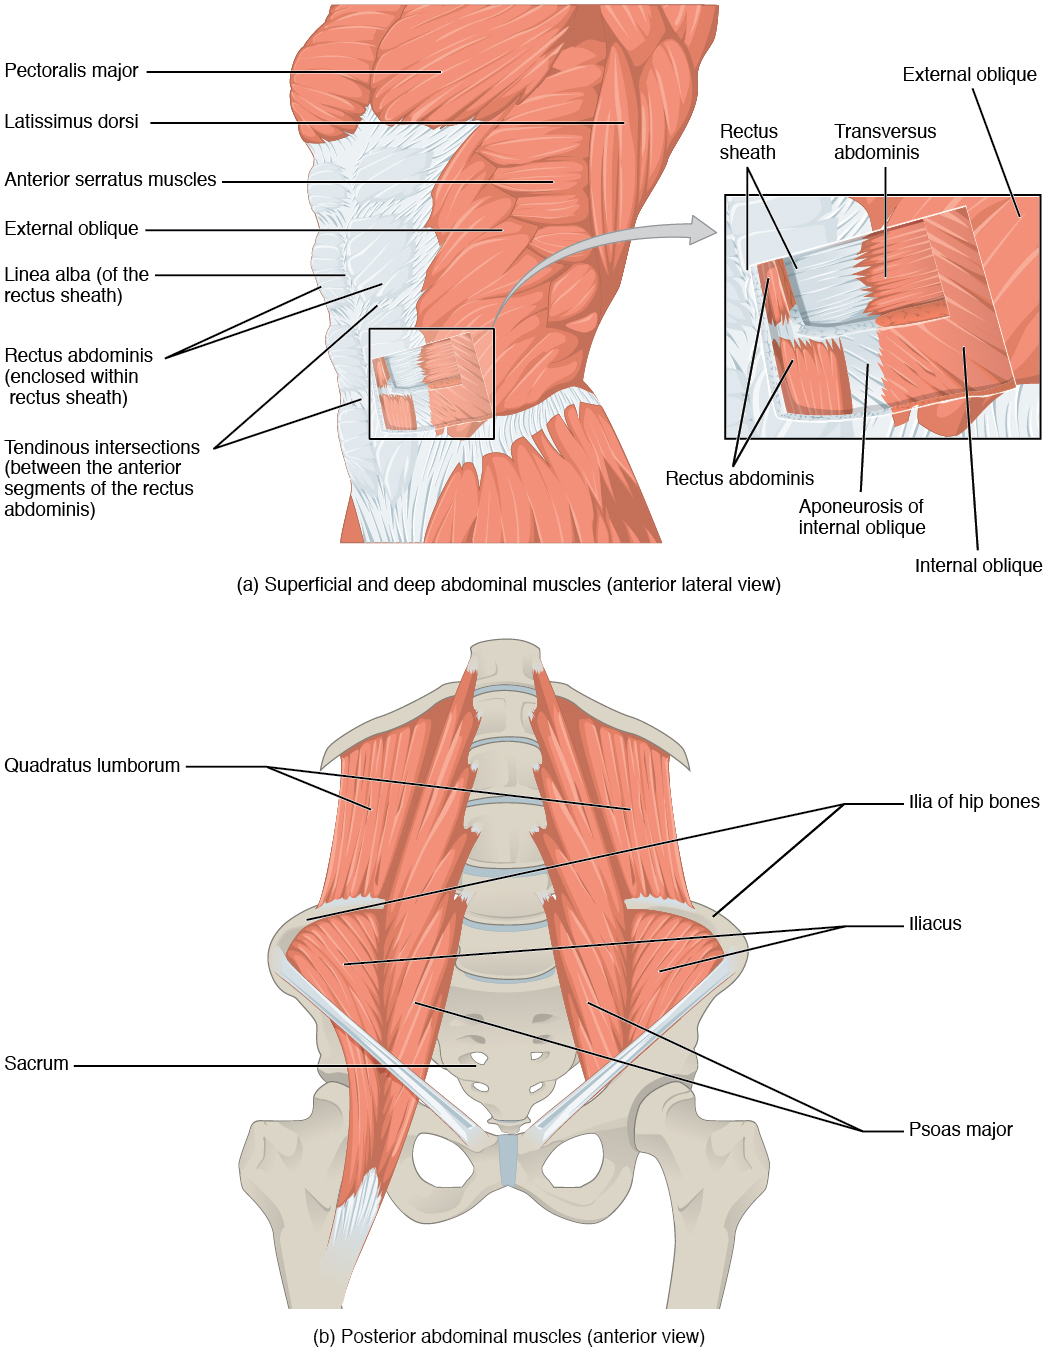 114 Axial Muscles Of The Abdominal Wall And Thorax Anatomy Below Is A Diagram Inhalation Exhalation With Anatomical Abdomen